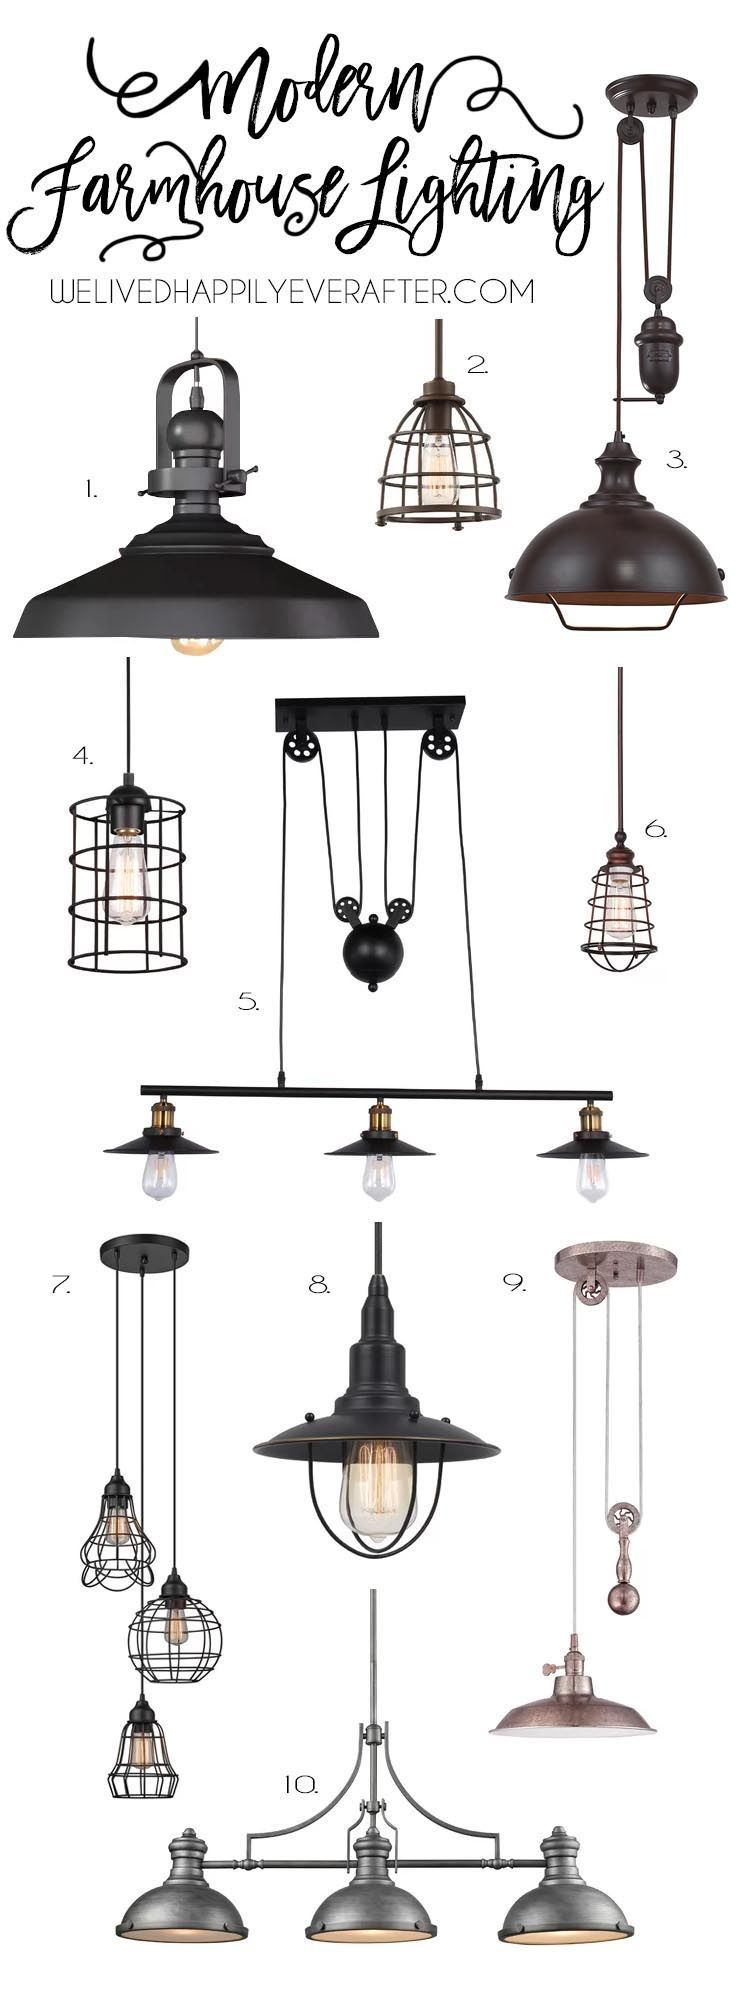 Rustic Industrial Modern Farmhouse Metal Lighting For Your Home Decor- #HannahsFarmhouseFavs #modernfarmhouse Rustic Industrial Modern Farmhouse Metal Lighting For Your Home Decor #industrialfarmhouselivingroom